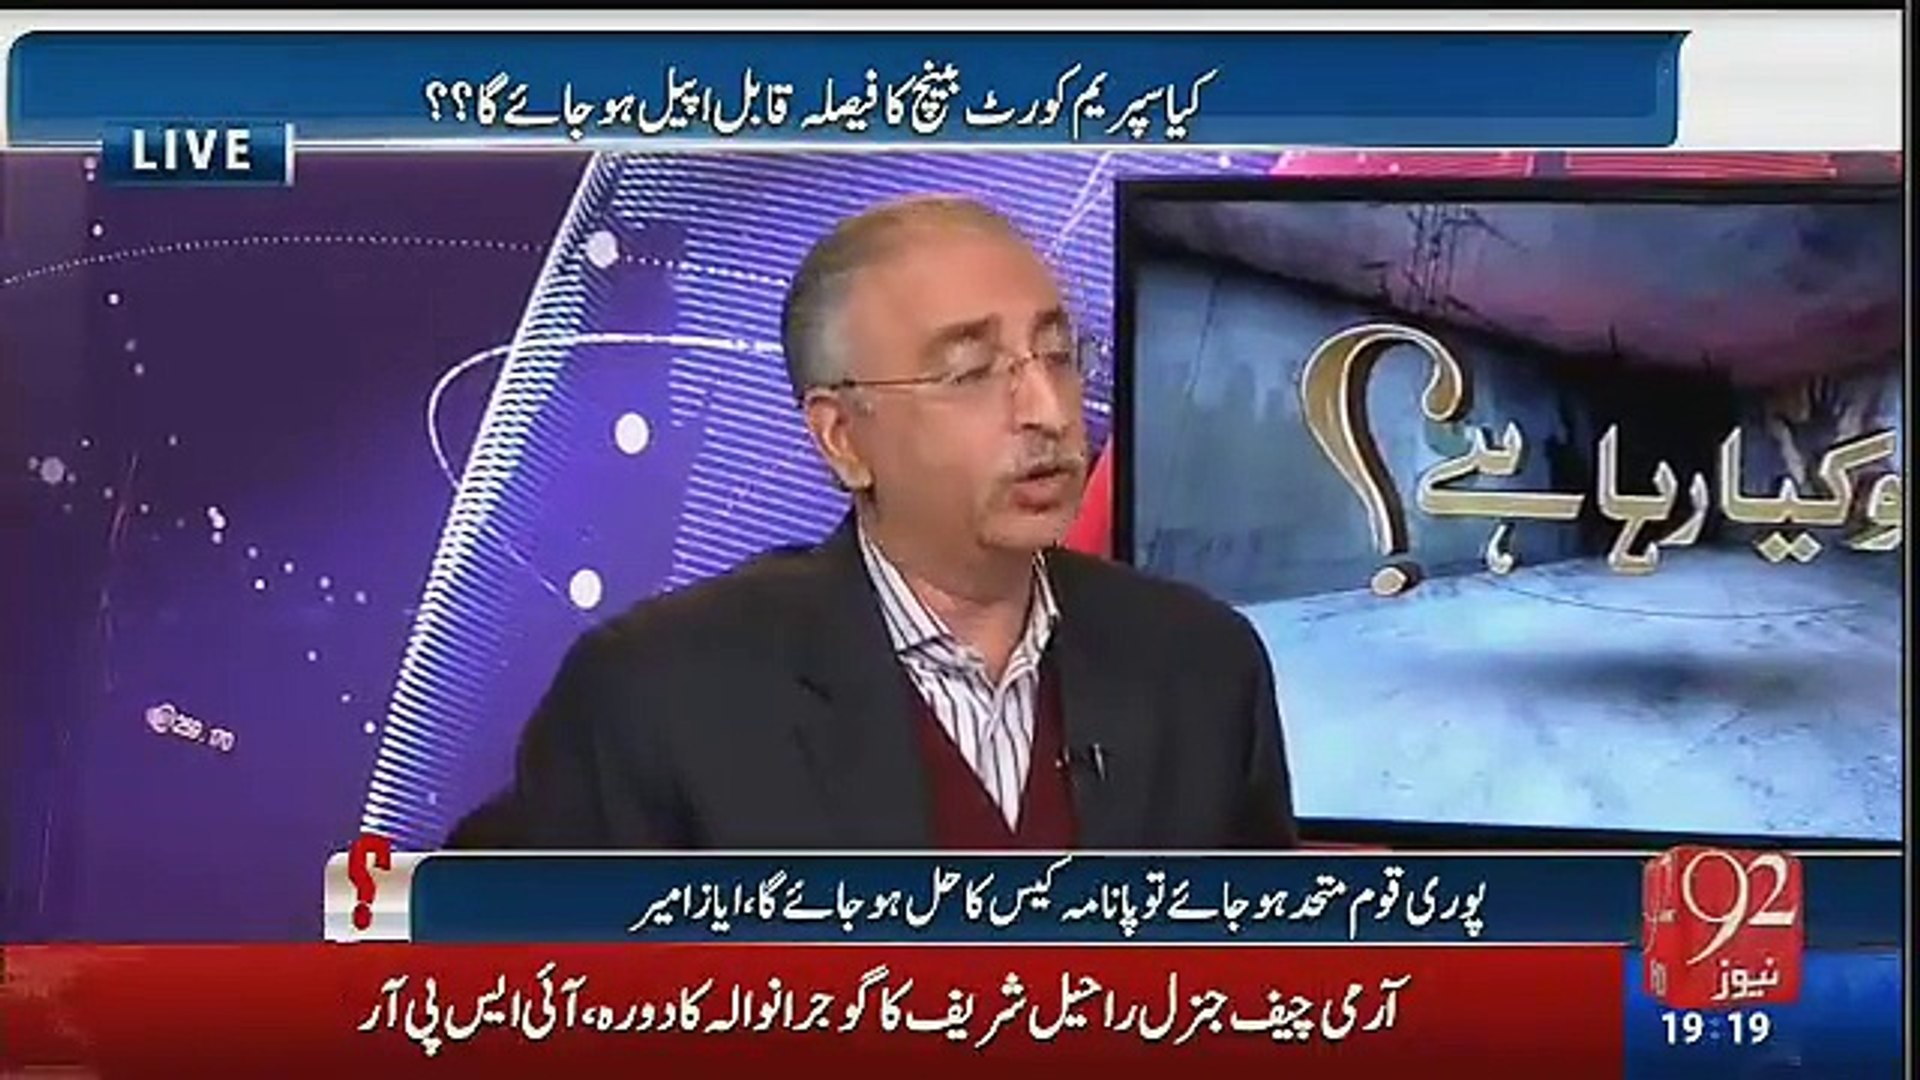 What Was The Actual Condition Real Estate In Qatar When Sharif Family Invest- Dr Farrukh Saleem